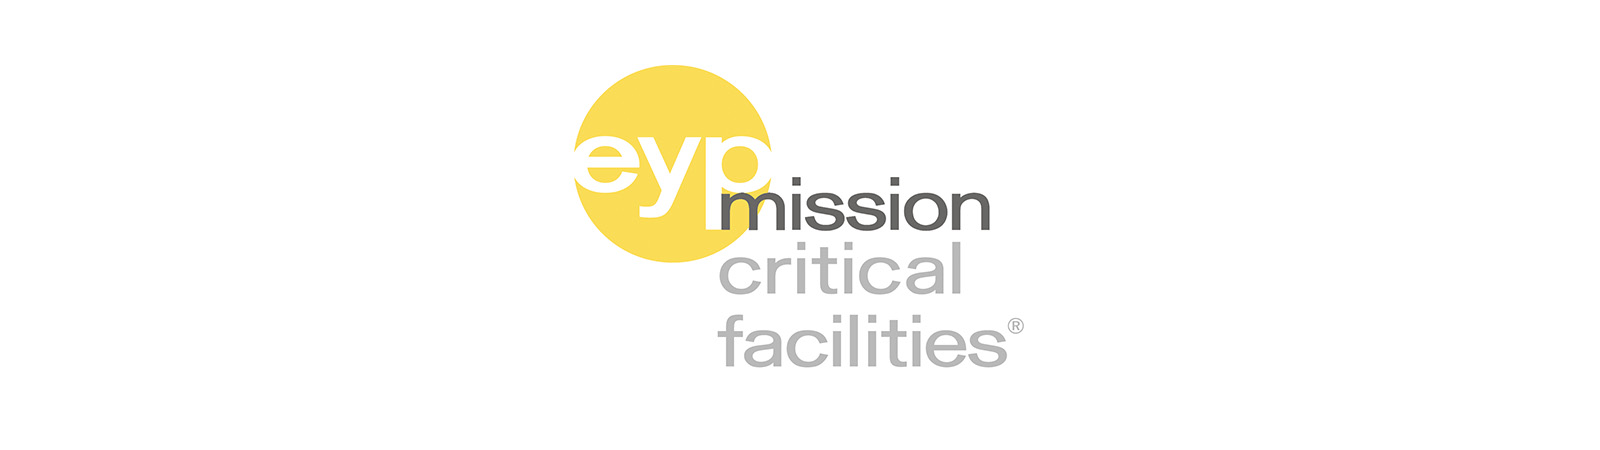 EYP Mission Critical Facilities Logo Image